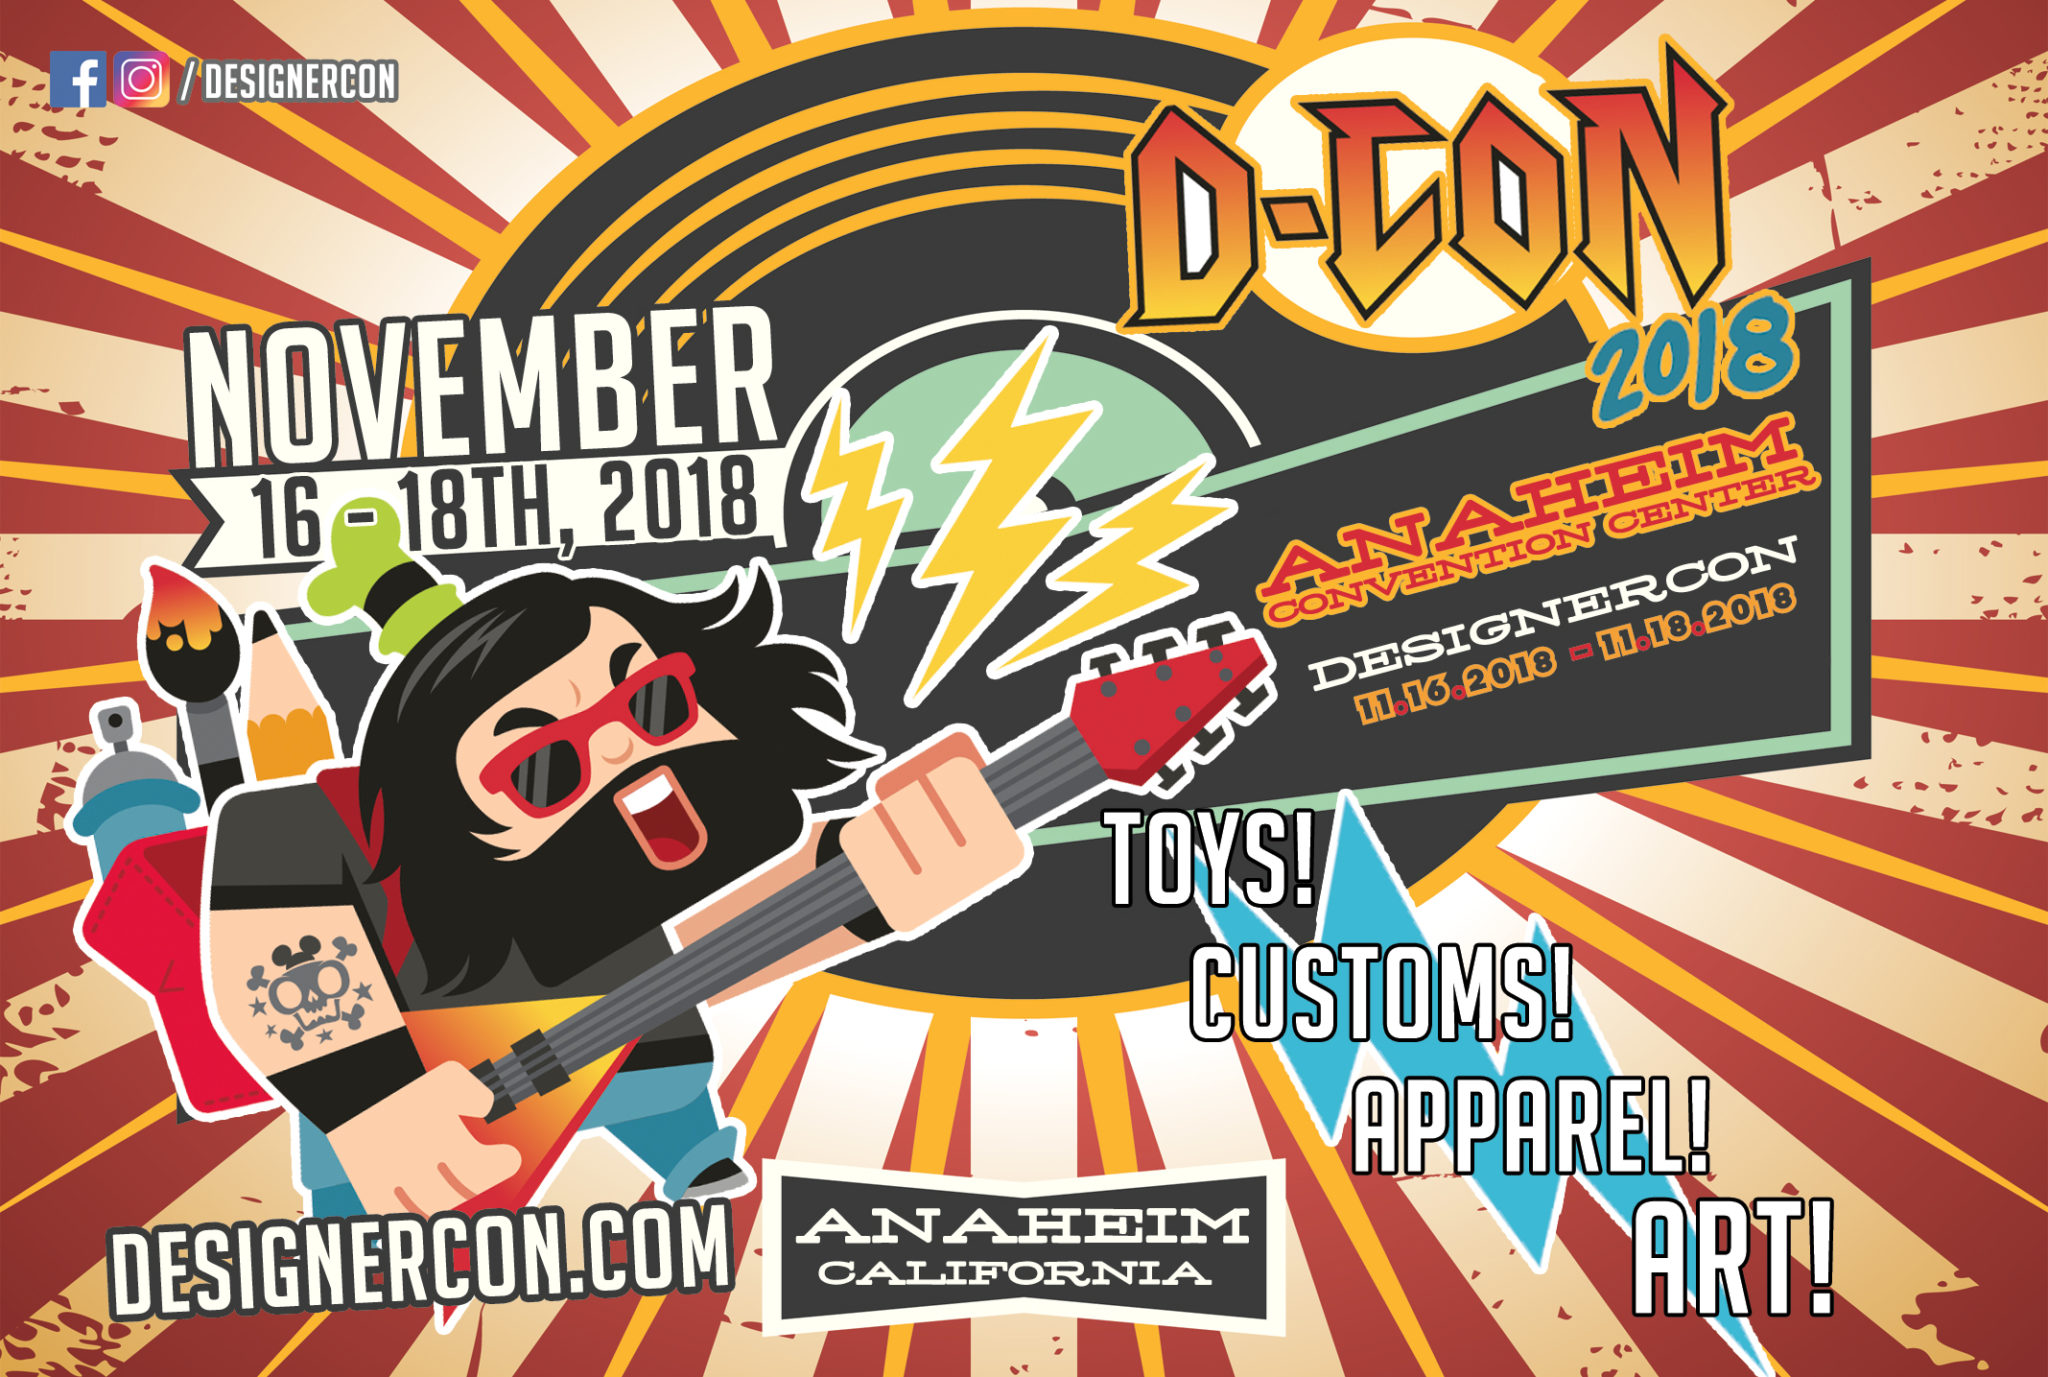 13th Annual DesignerCon Expands To Anaheim With Triple Exhibition Space, International Partnerships & More 2